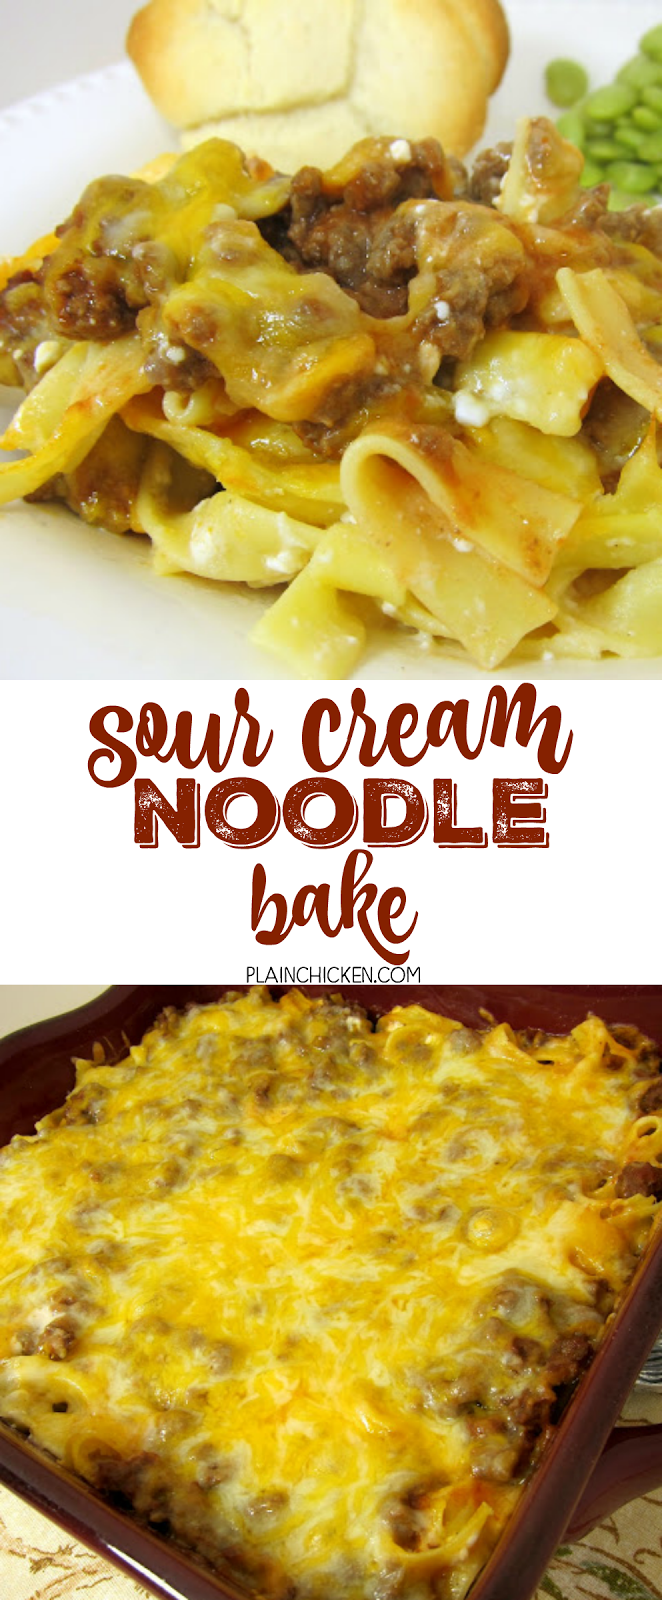 Sour Cream Noodle Bake - ready in under 30 minutes! Egg noodles, hamburger, tomato sauce, cottage cheese, sour cream and cheddar cheese. Comfort food at its best! Everyone loves this easy casserole! Can make ahead of time and refrigerate or freeze for later. YUM!